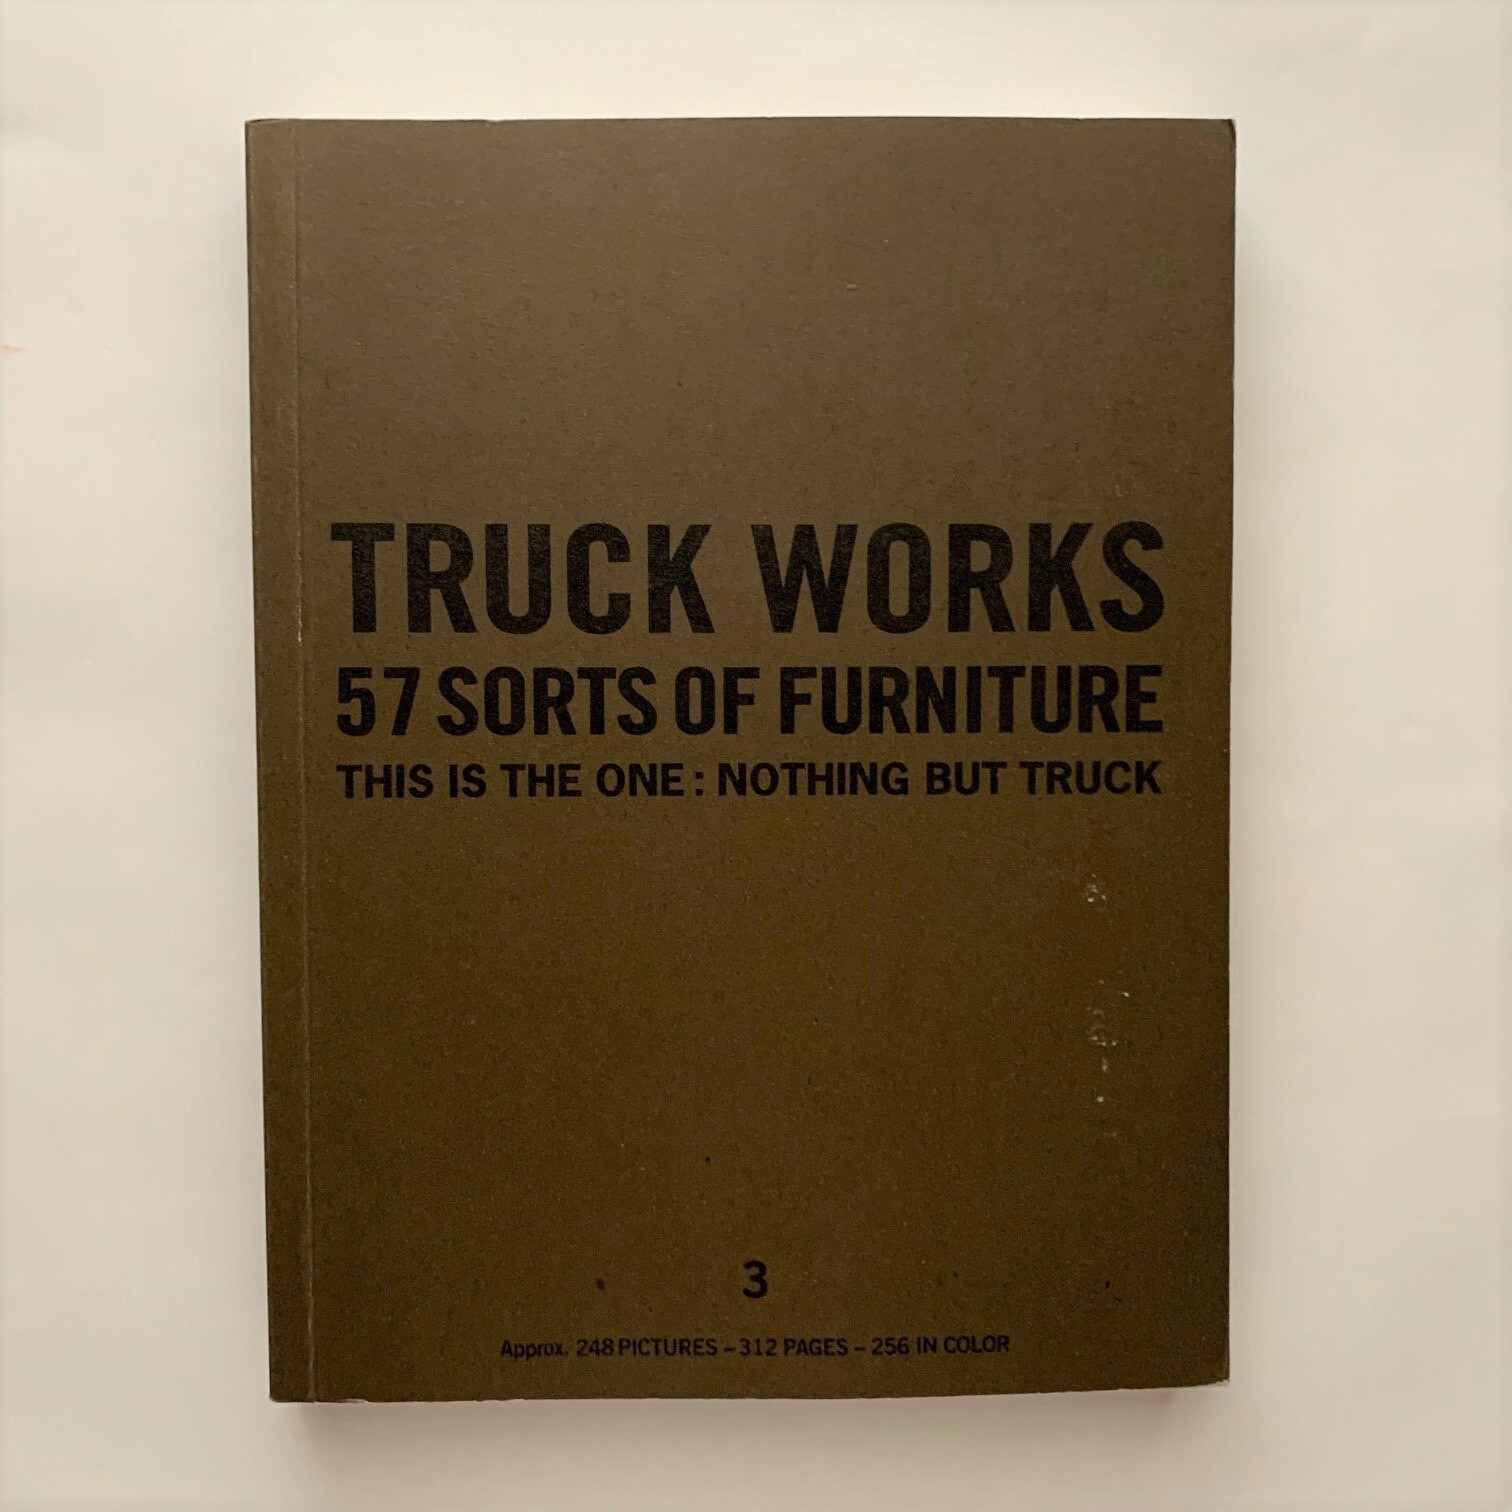 TRUCK WORKS 3 / 57SORTS OF FURNITURE / TRUCK FURNITURE